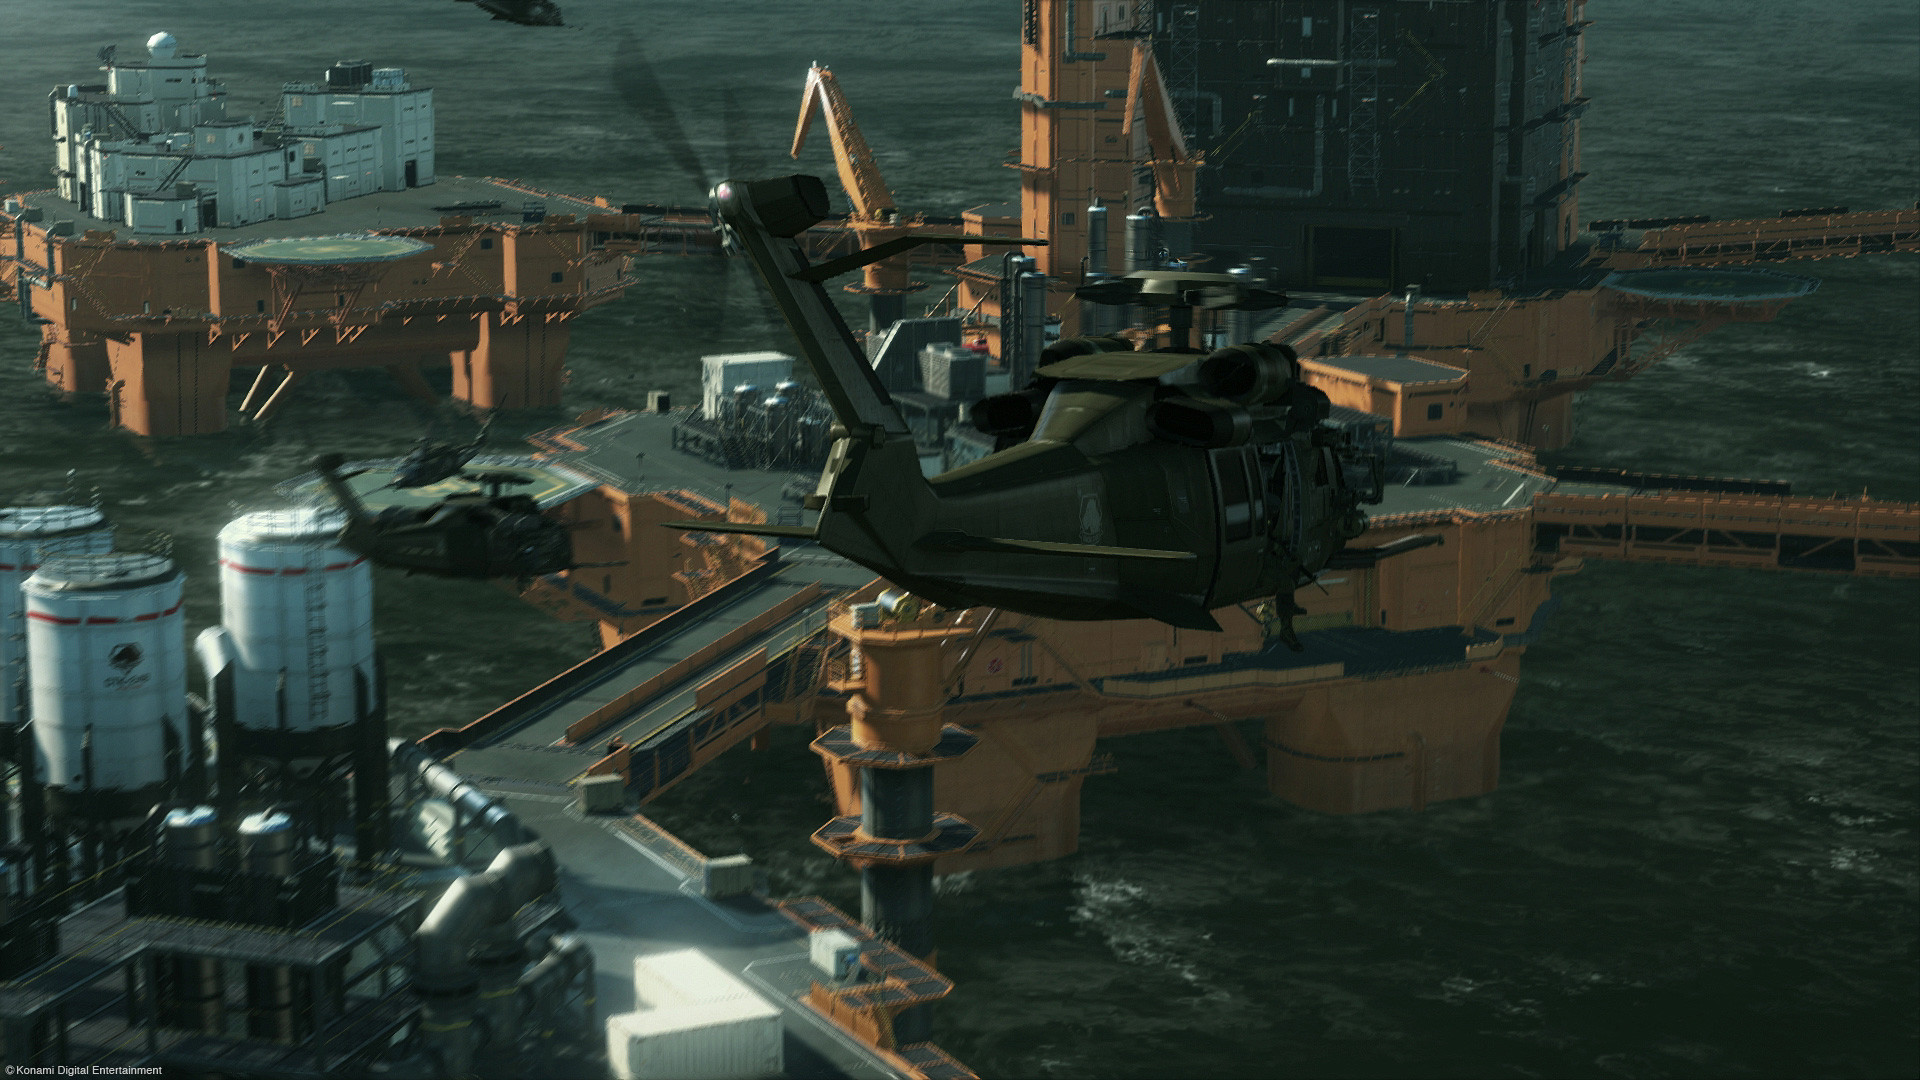 Metal-Gear-Solid-V-The-Phantom-Pain_2014_06-09-14_005